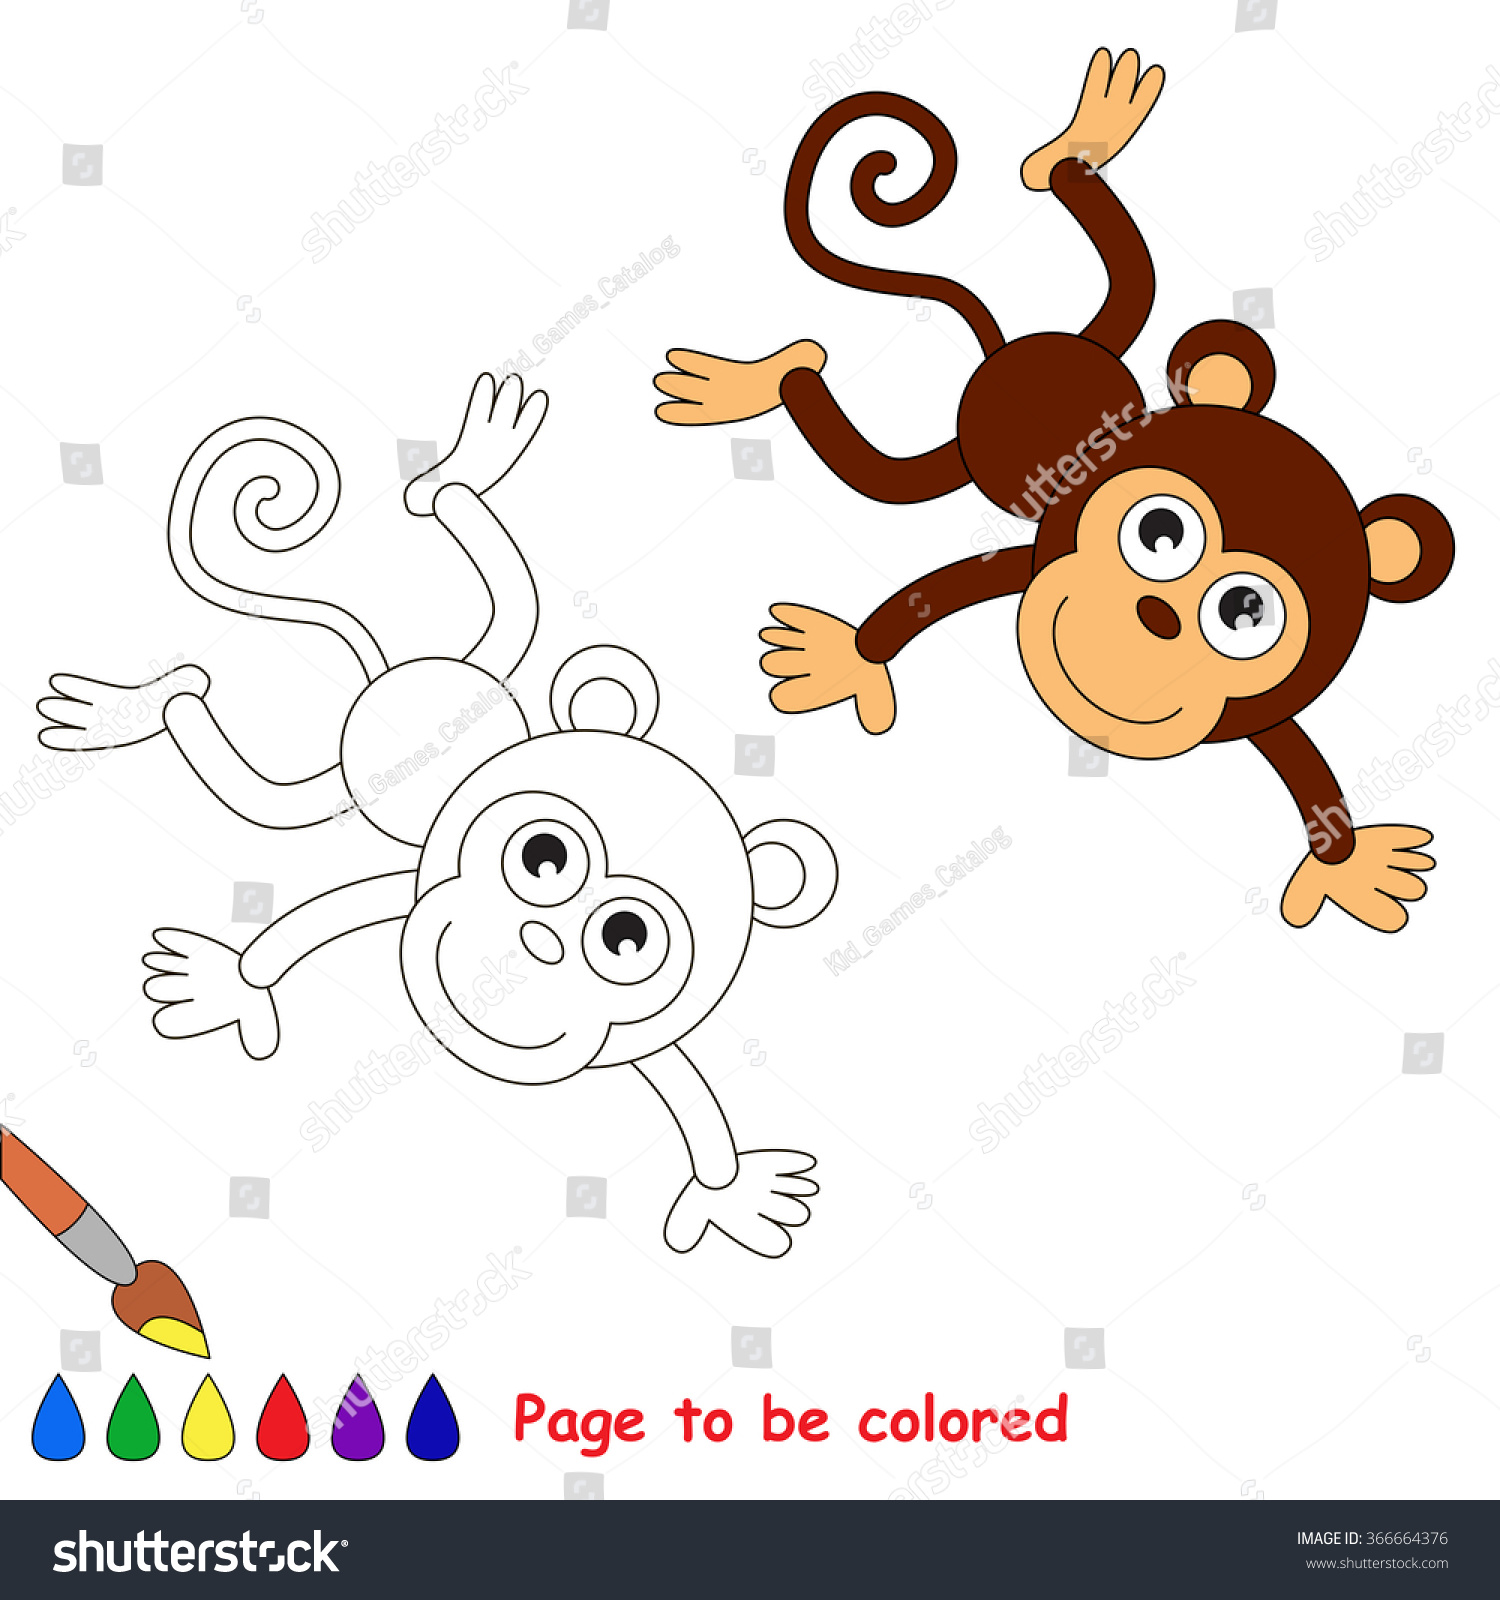 Monkey Vector Cartoon Be Colored Coloring Stock Vector